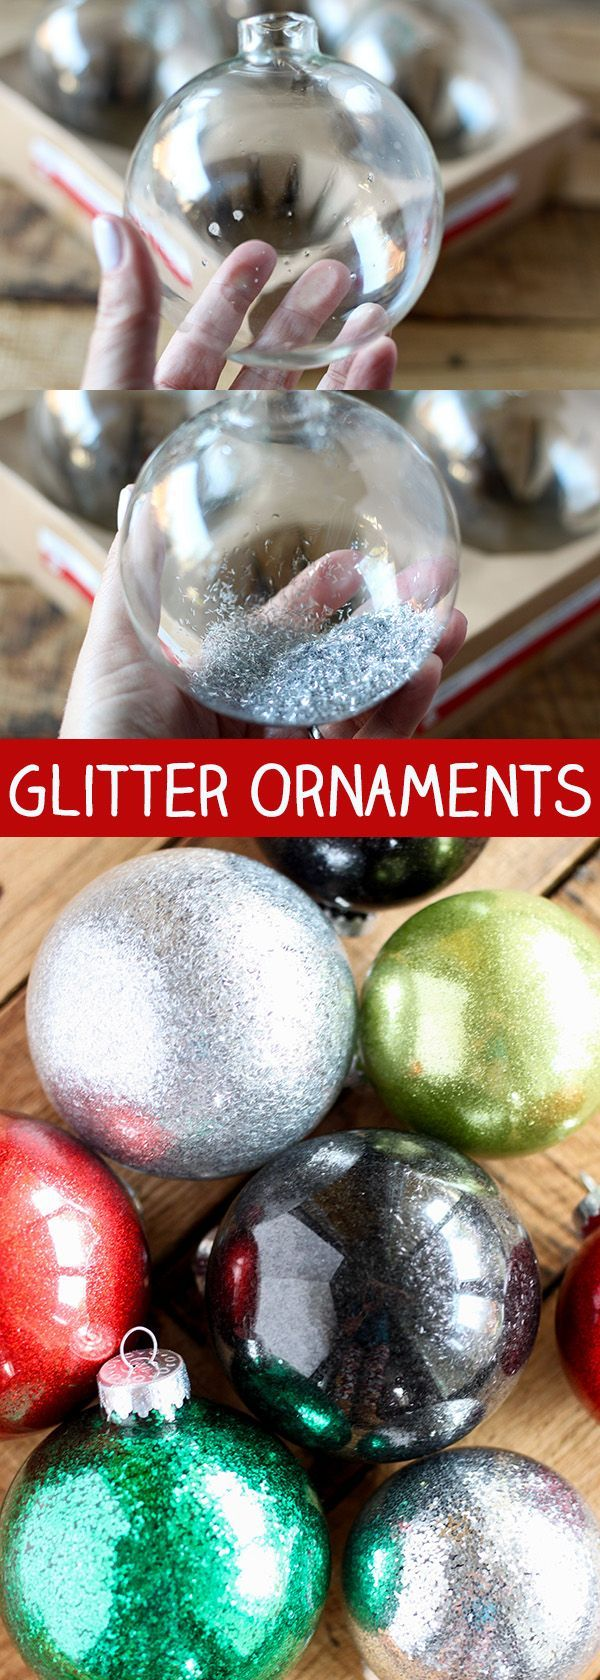 DIY Glitter Ornaments for Christmas Merry Christmas